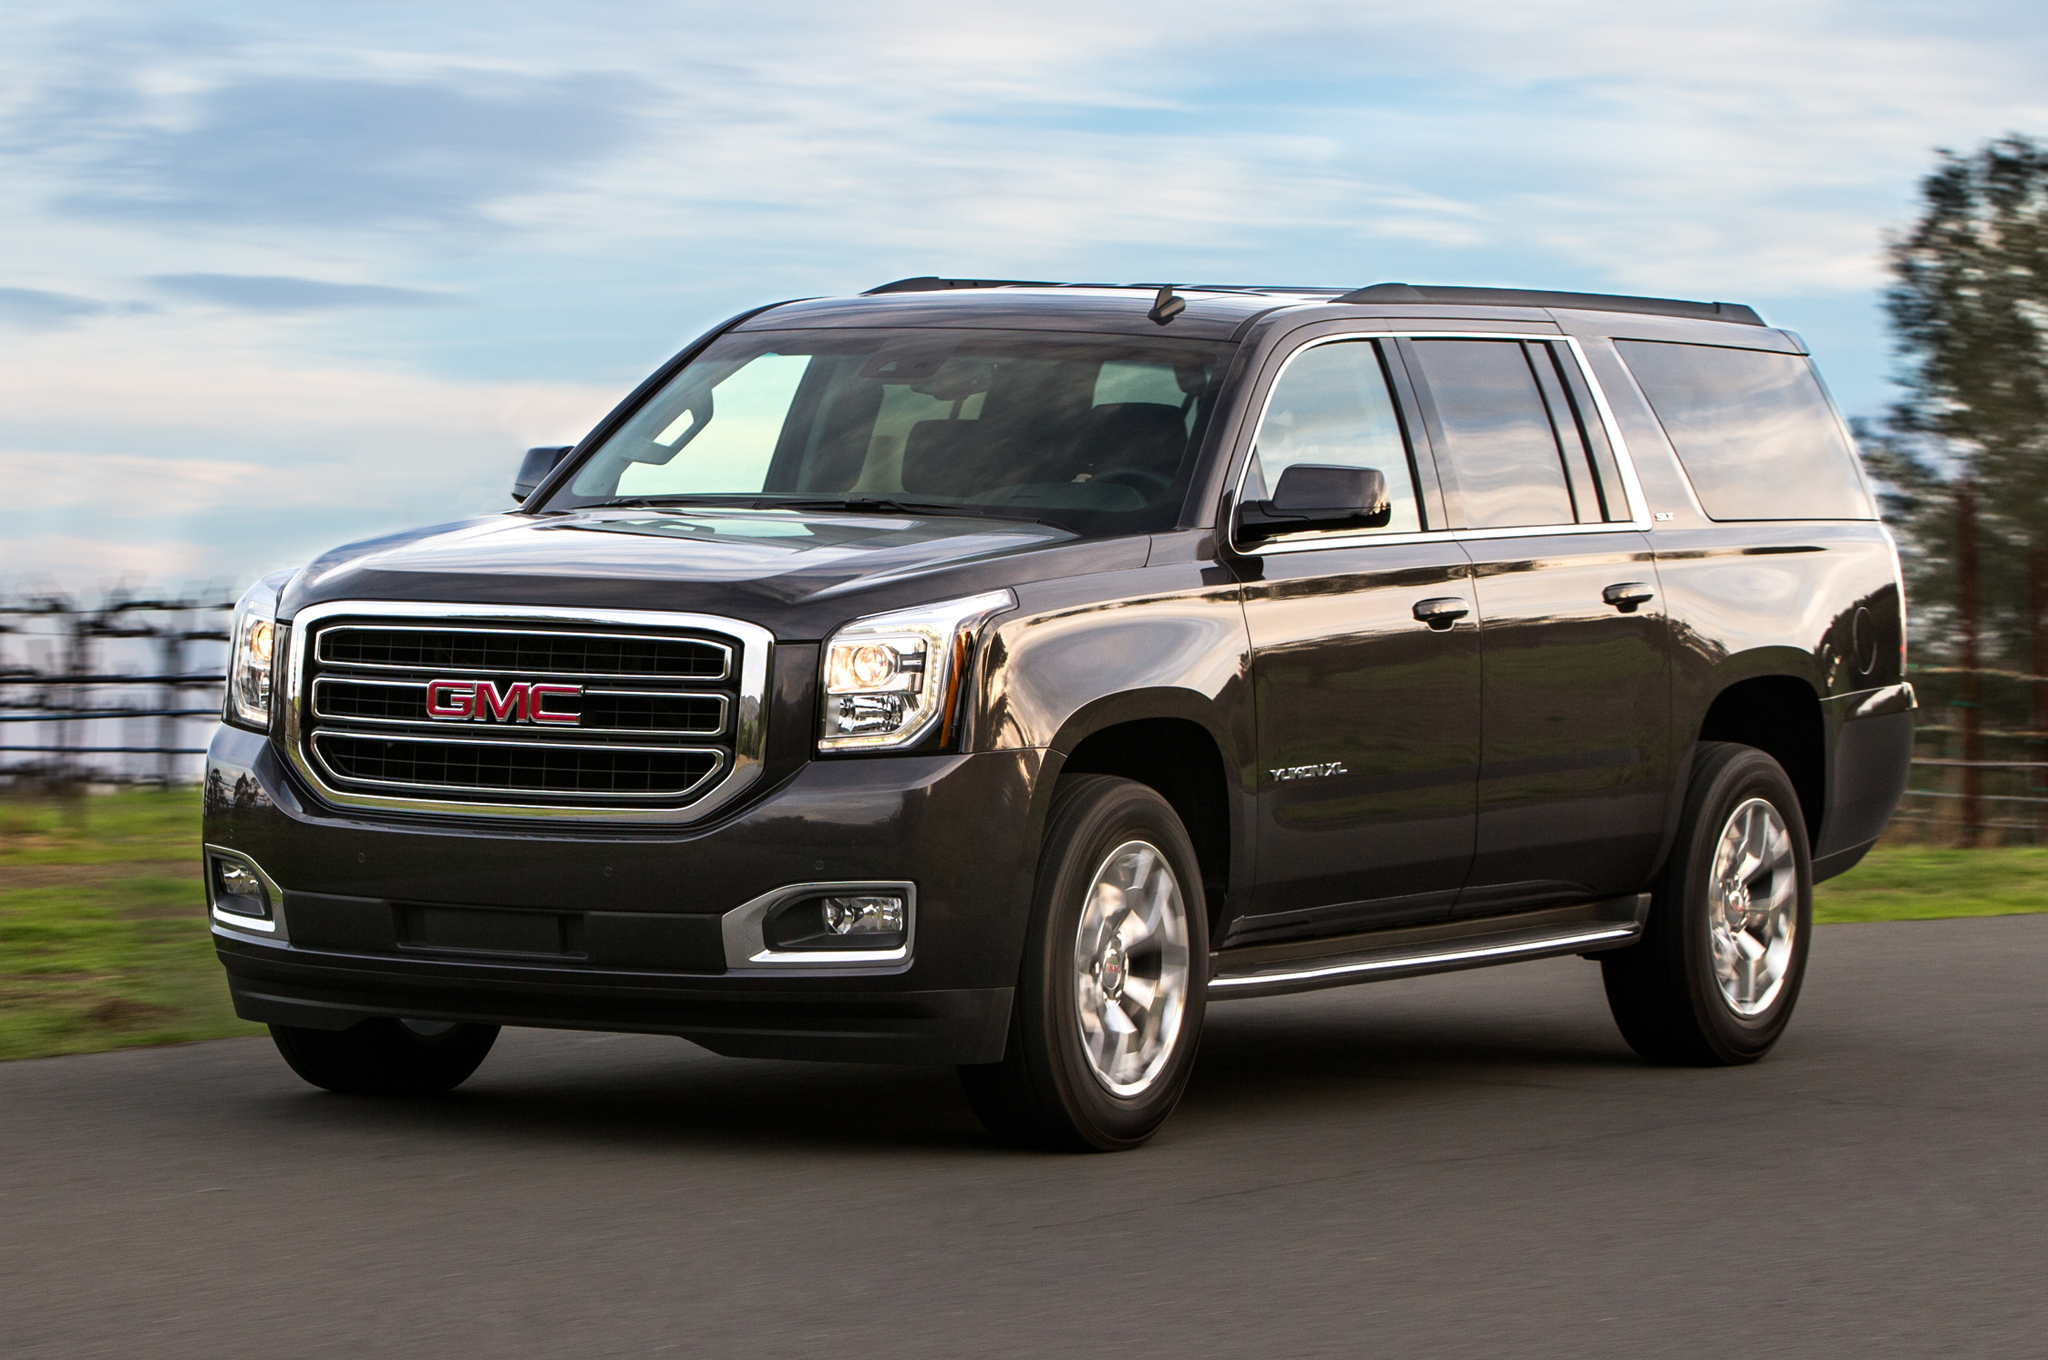 2015 GMC Yukon XL Pictures Gallery (10 Images)